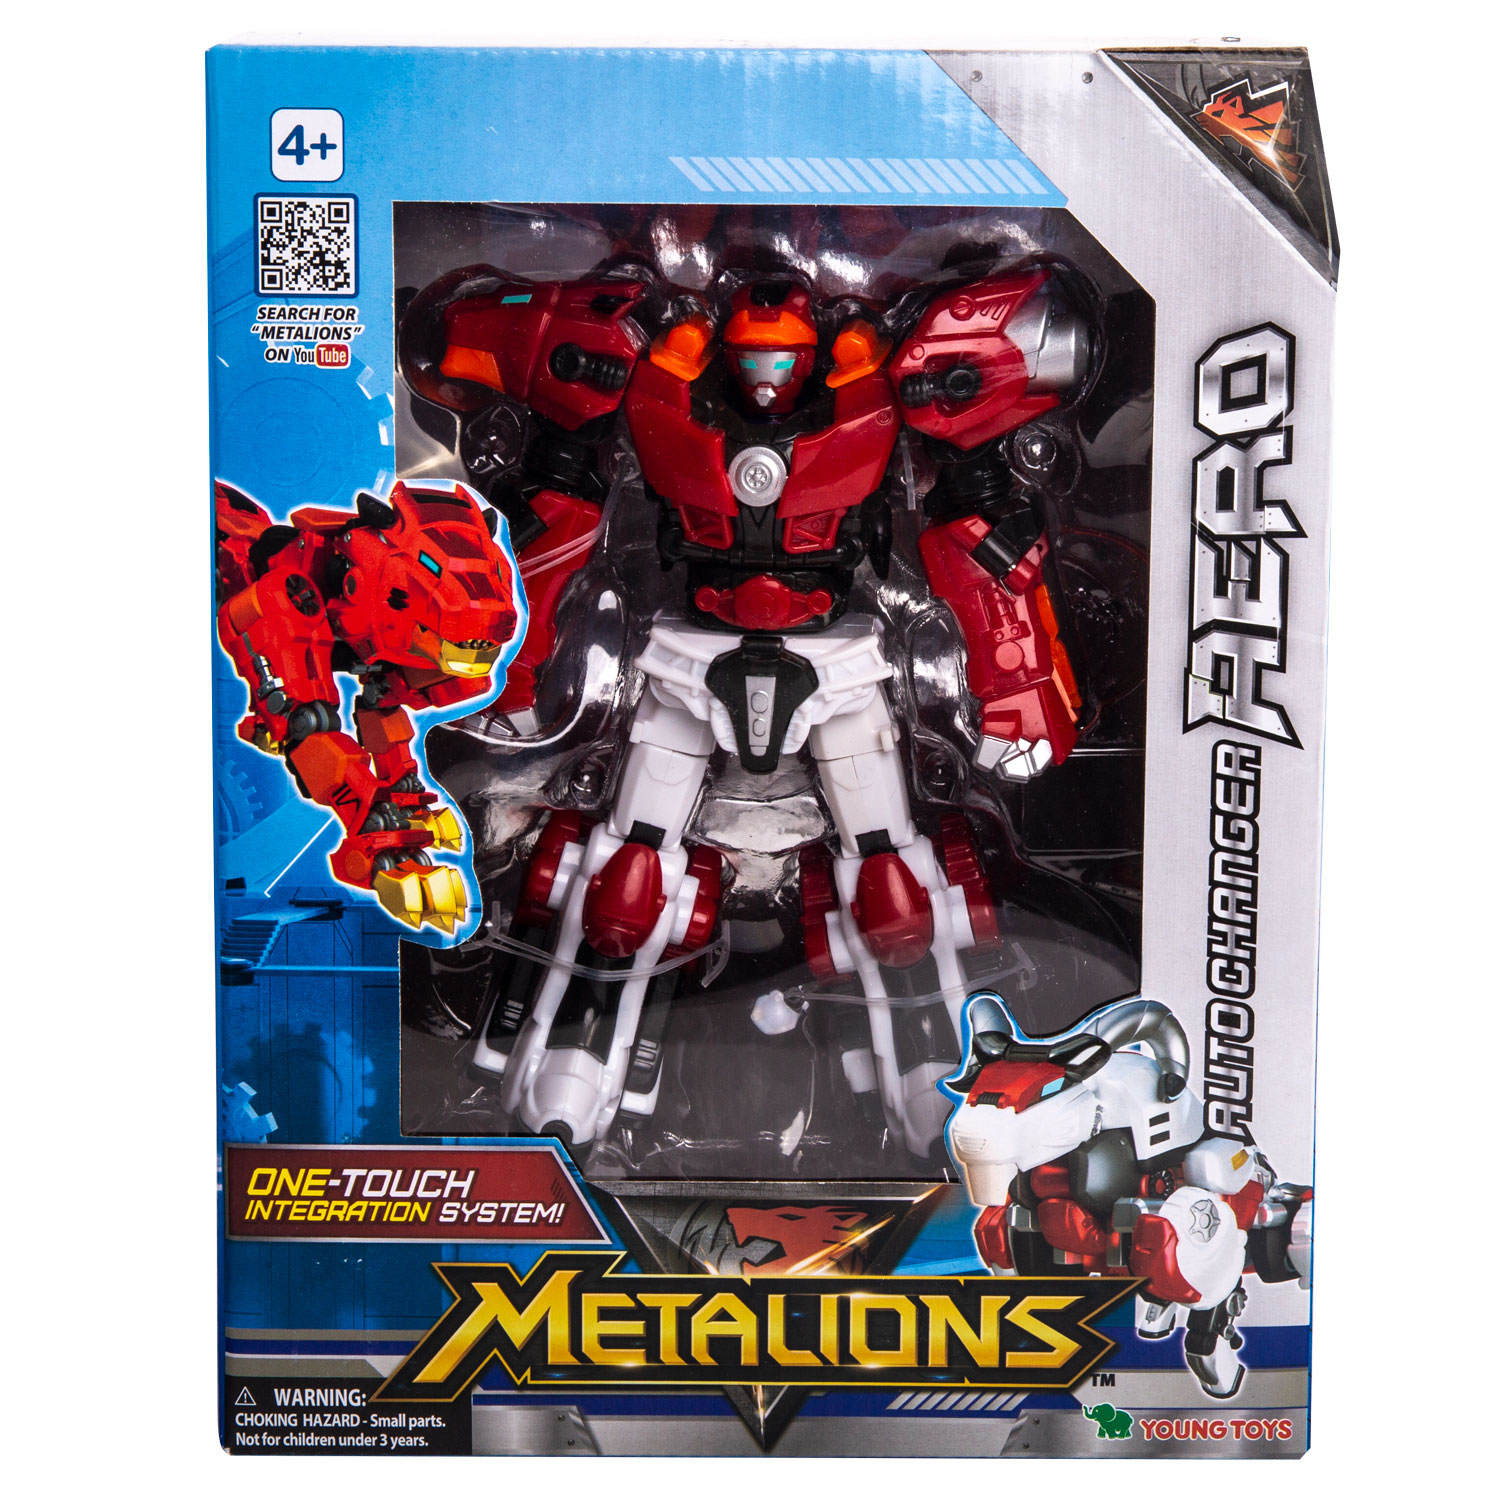 YOUNG TOYS METALIONS Auto-Changer Aero Action Figure